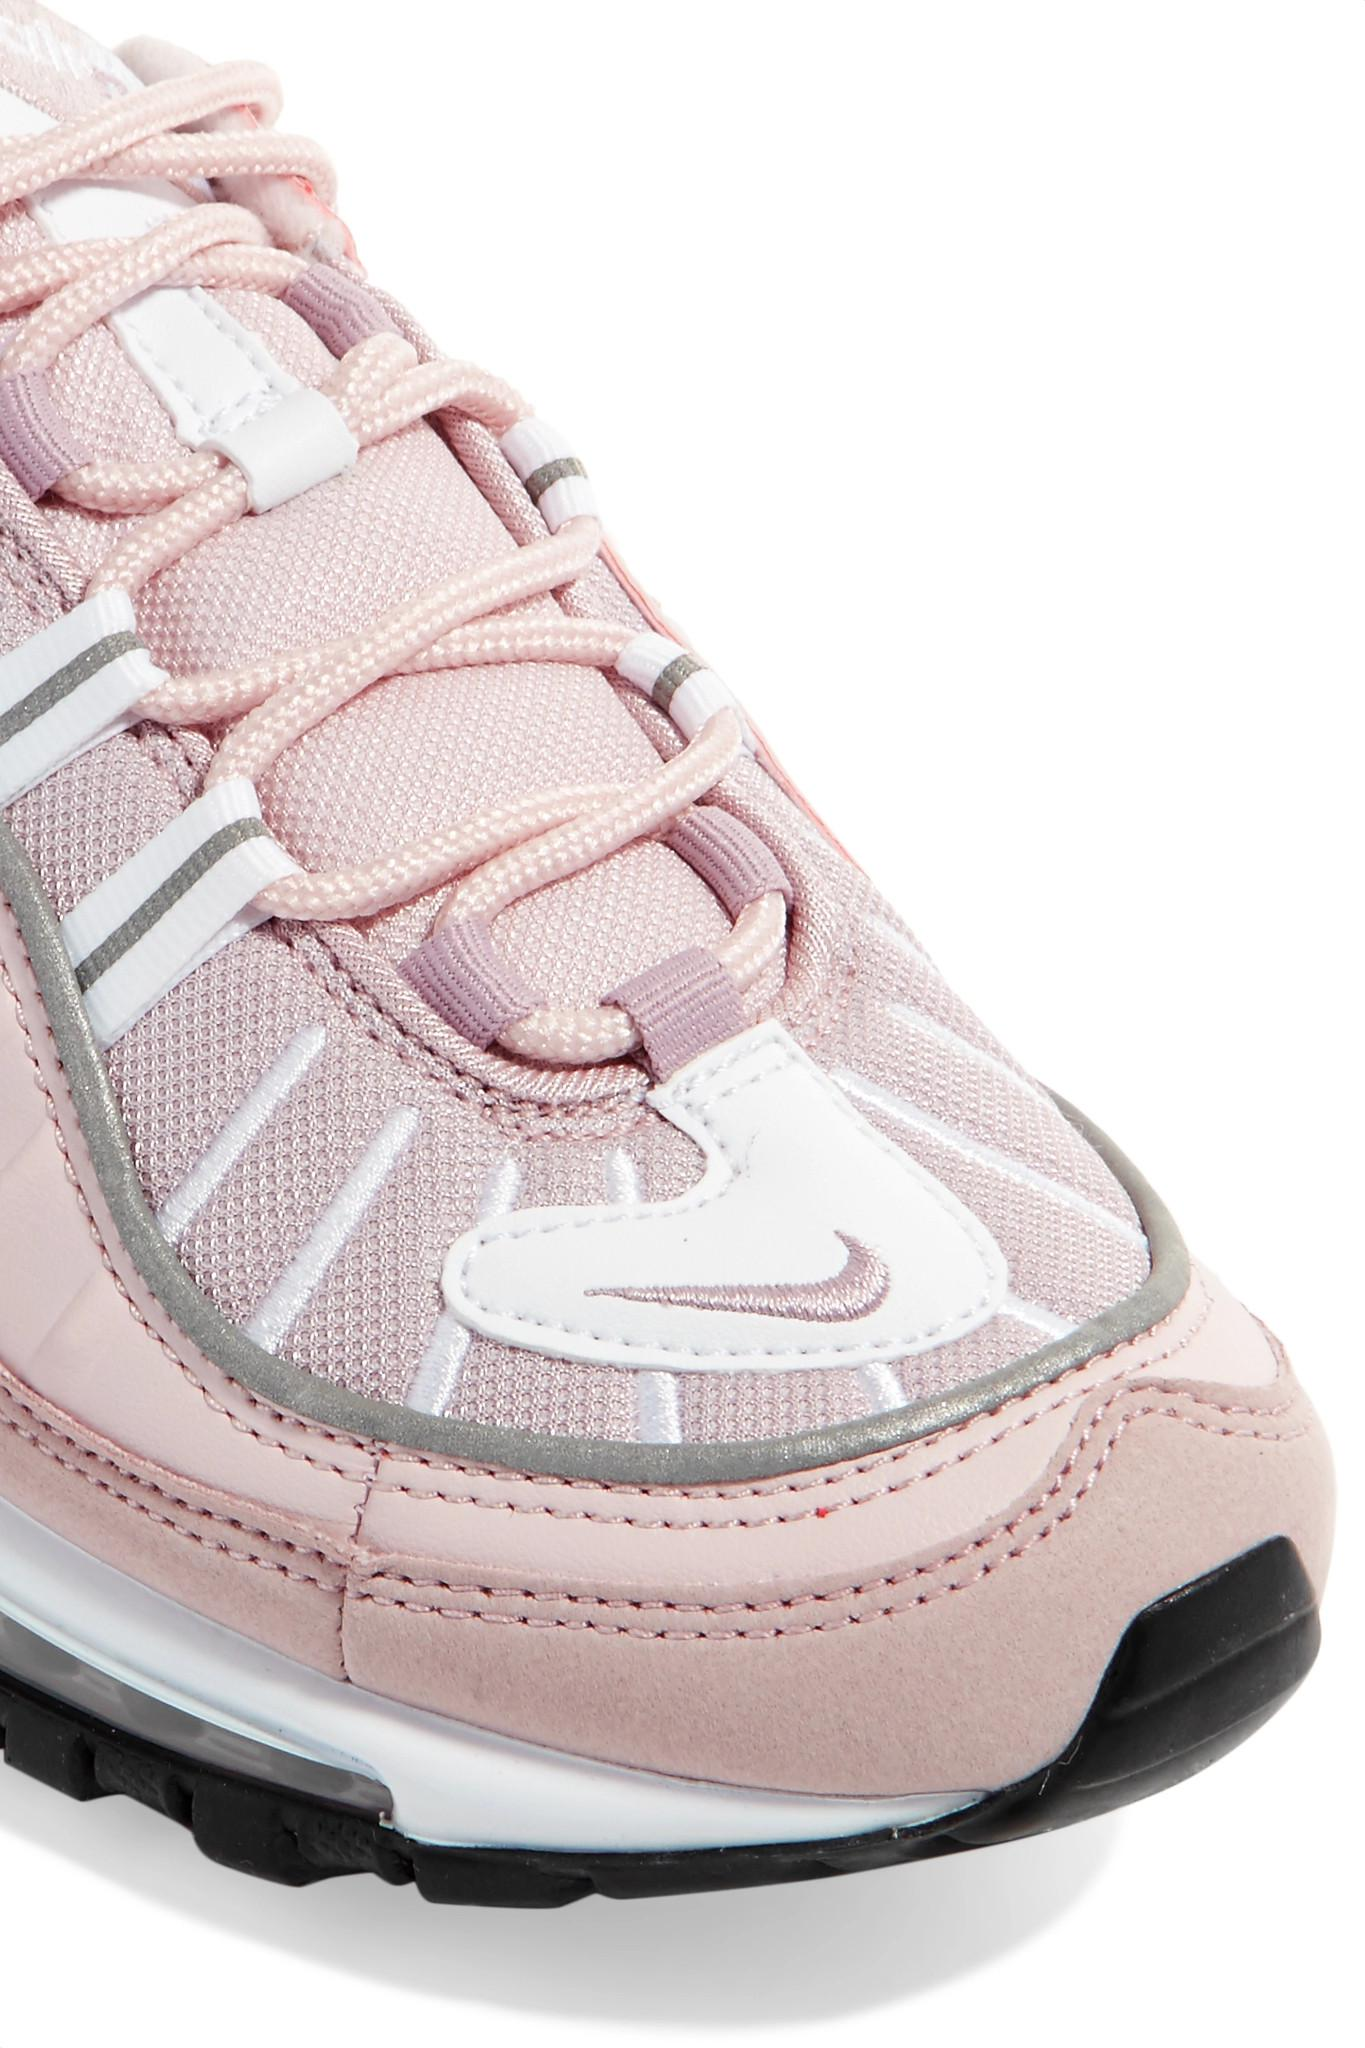 398e2b37406252 nike-pastel-pink-Air-Max-98-Leather-Suede-And-Mesh-Sneakers.jpeg